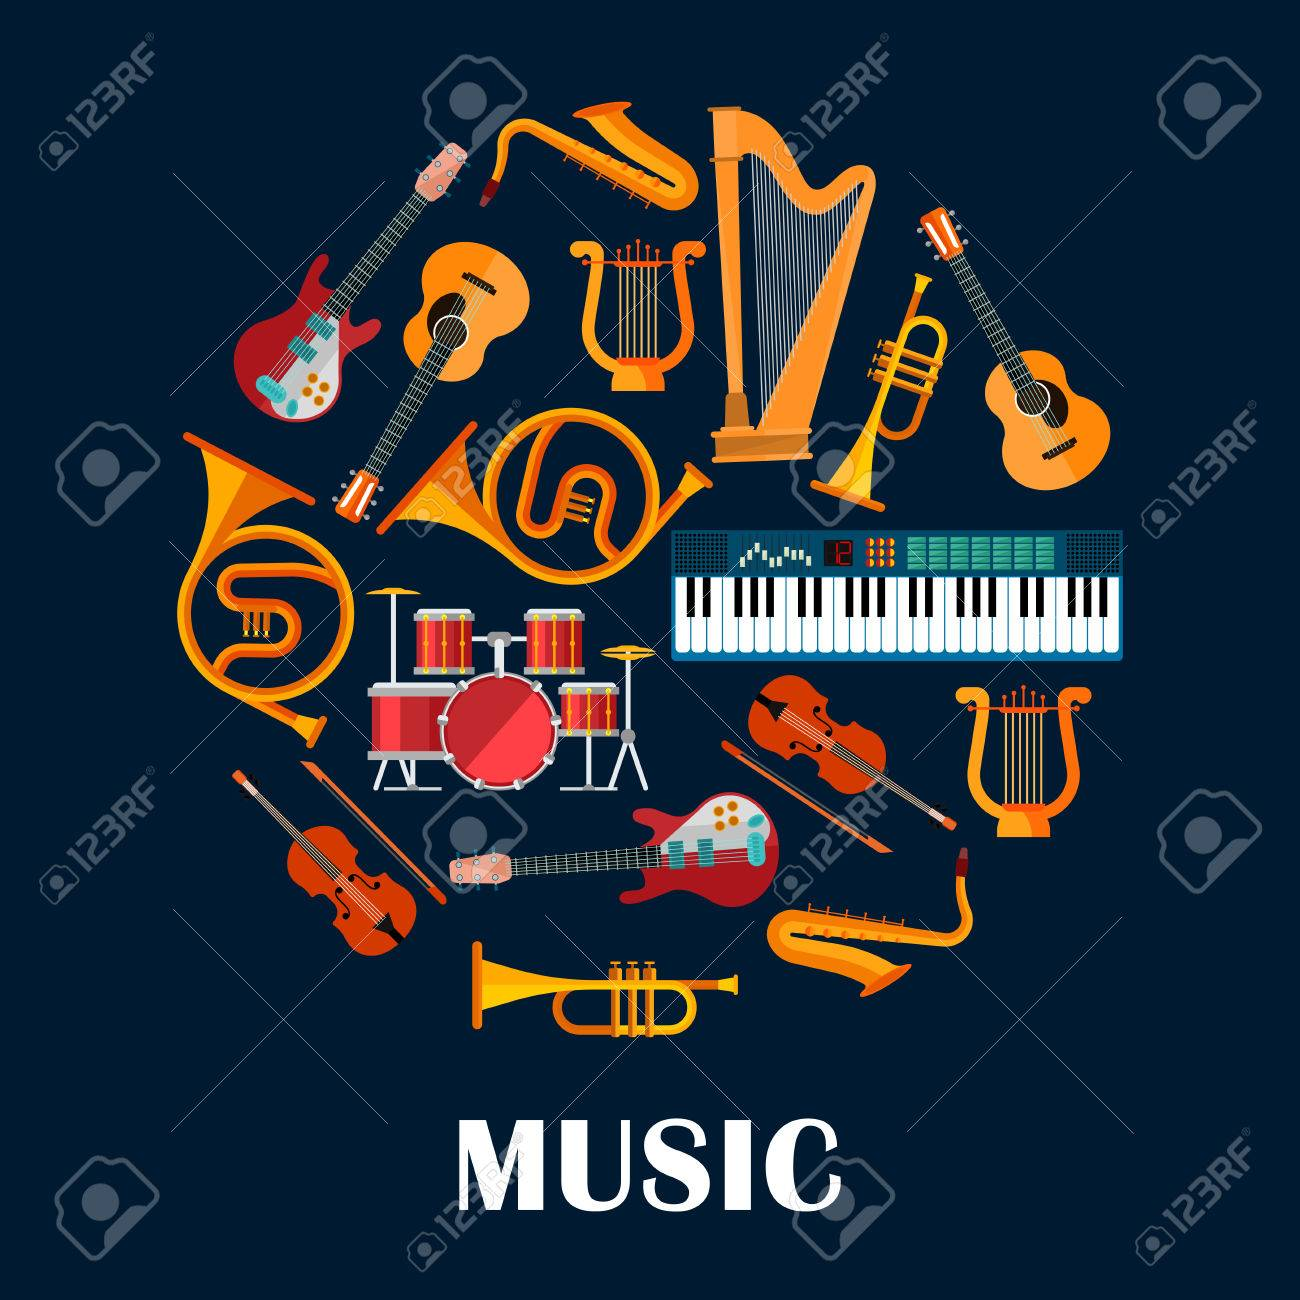 Music instruments or sound equipment  Electric and acoustic guitars,